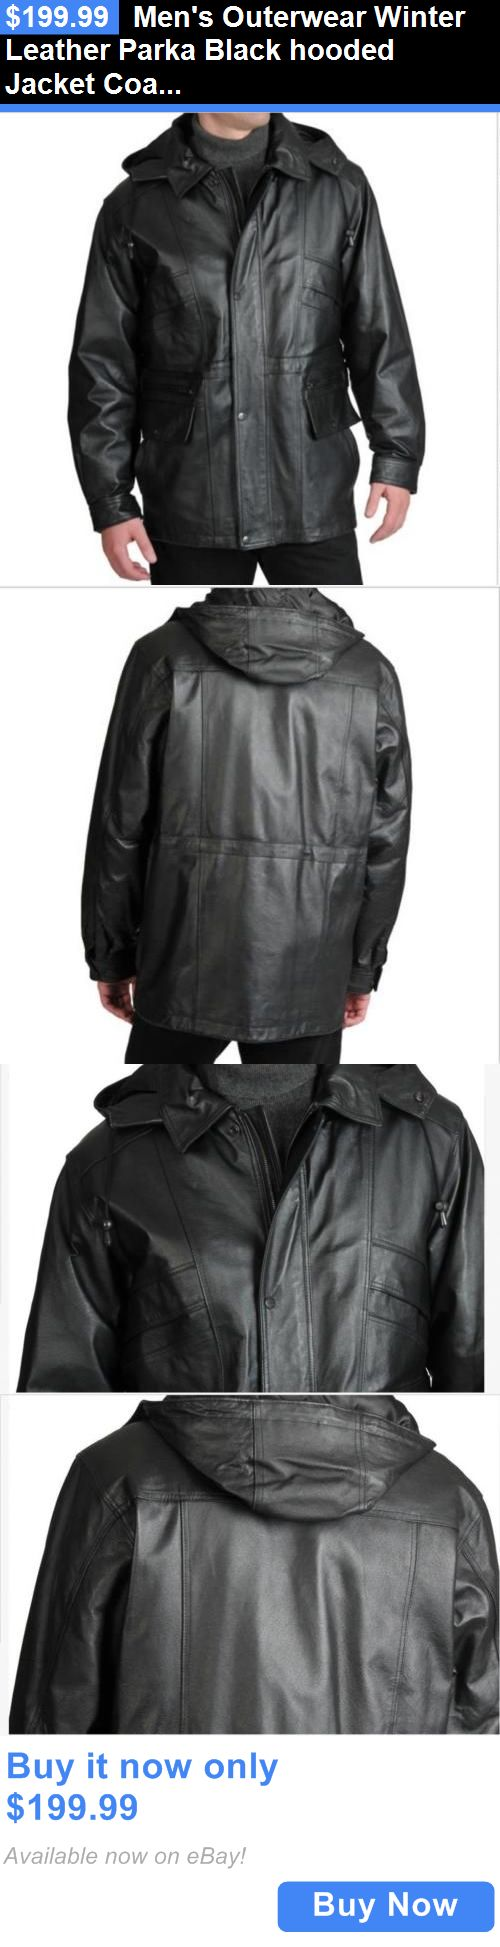 Men Coats And Jackets: Mens Outerwear Winter Leather Parka Black Hooded Jacket Coat Tag Size M And Fit L BUY IT NOW ONLY: $199.99